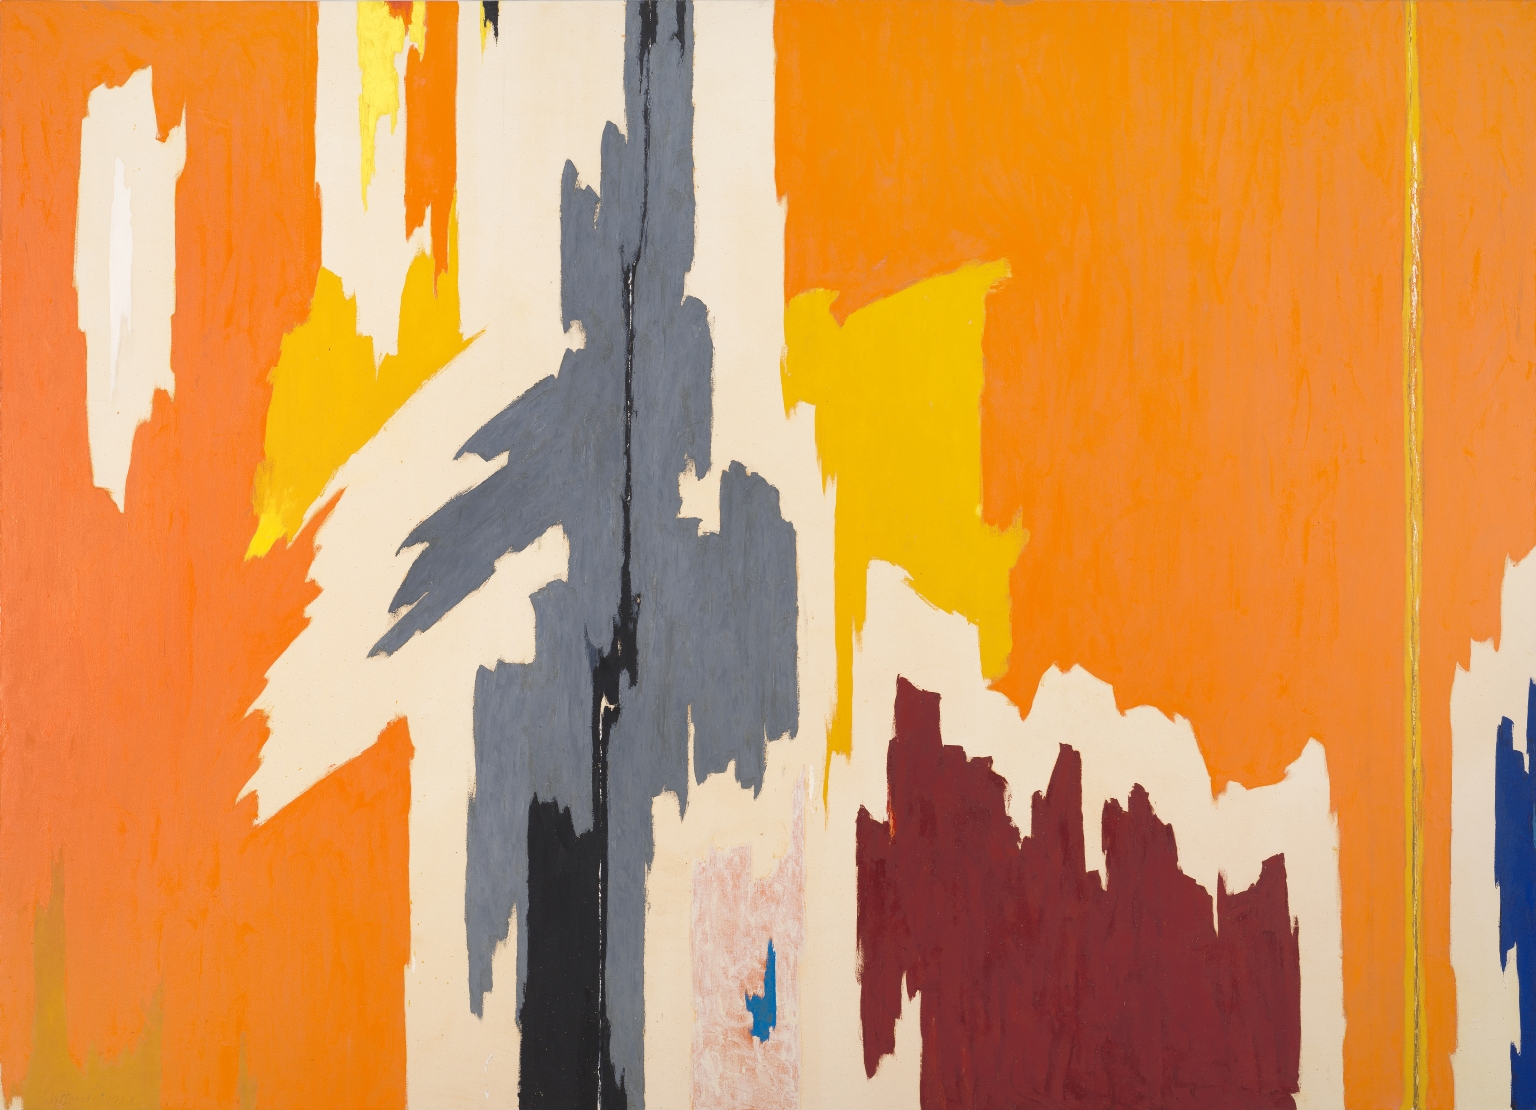 1959painting by abstract artistClyfford Still.